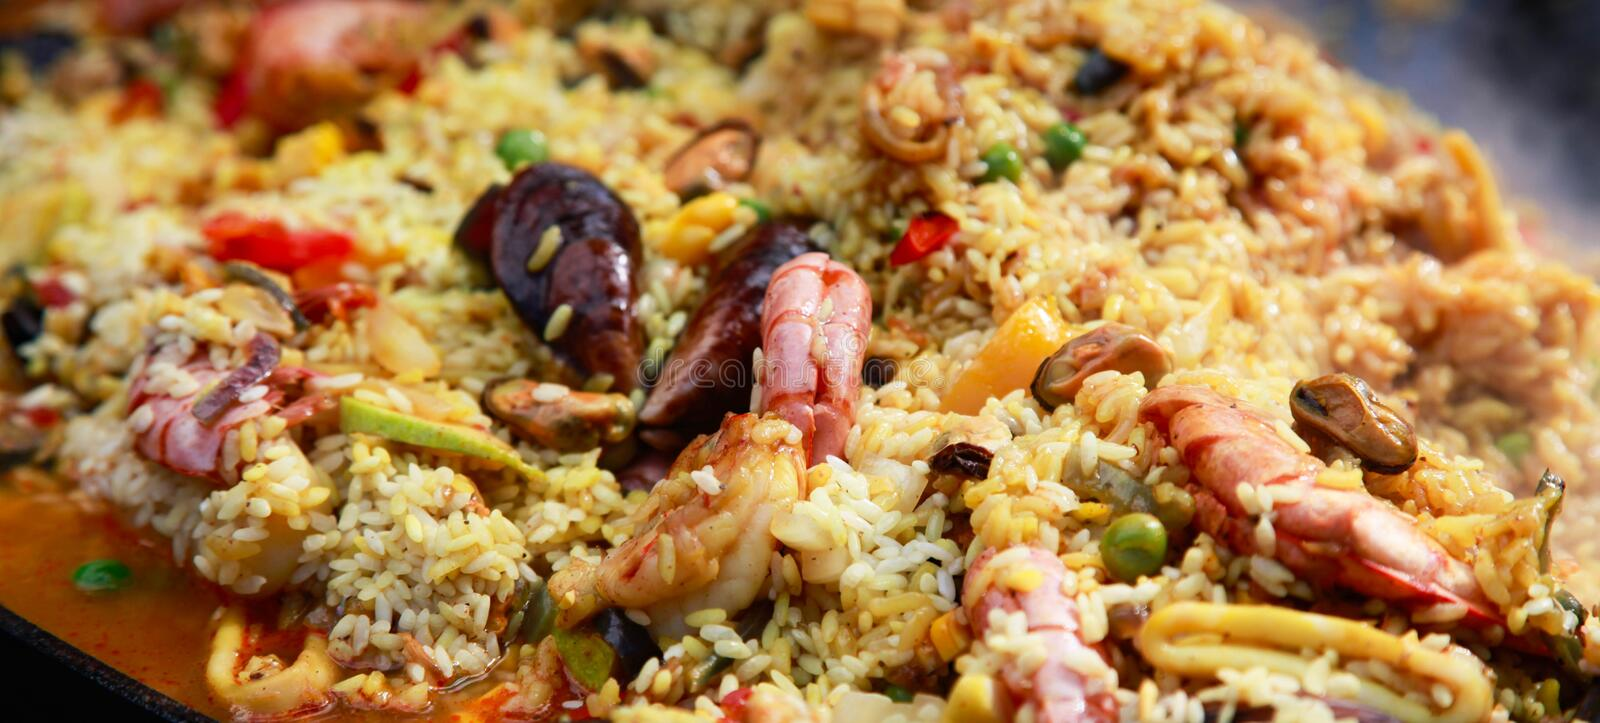 Typical spanish seafood paella in traditional pan royalty free stock photo